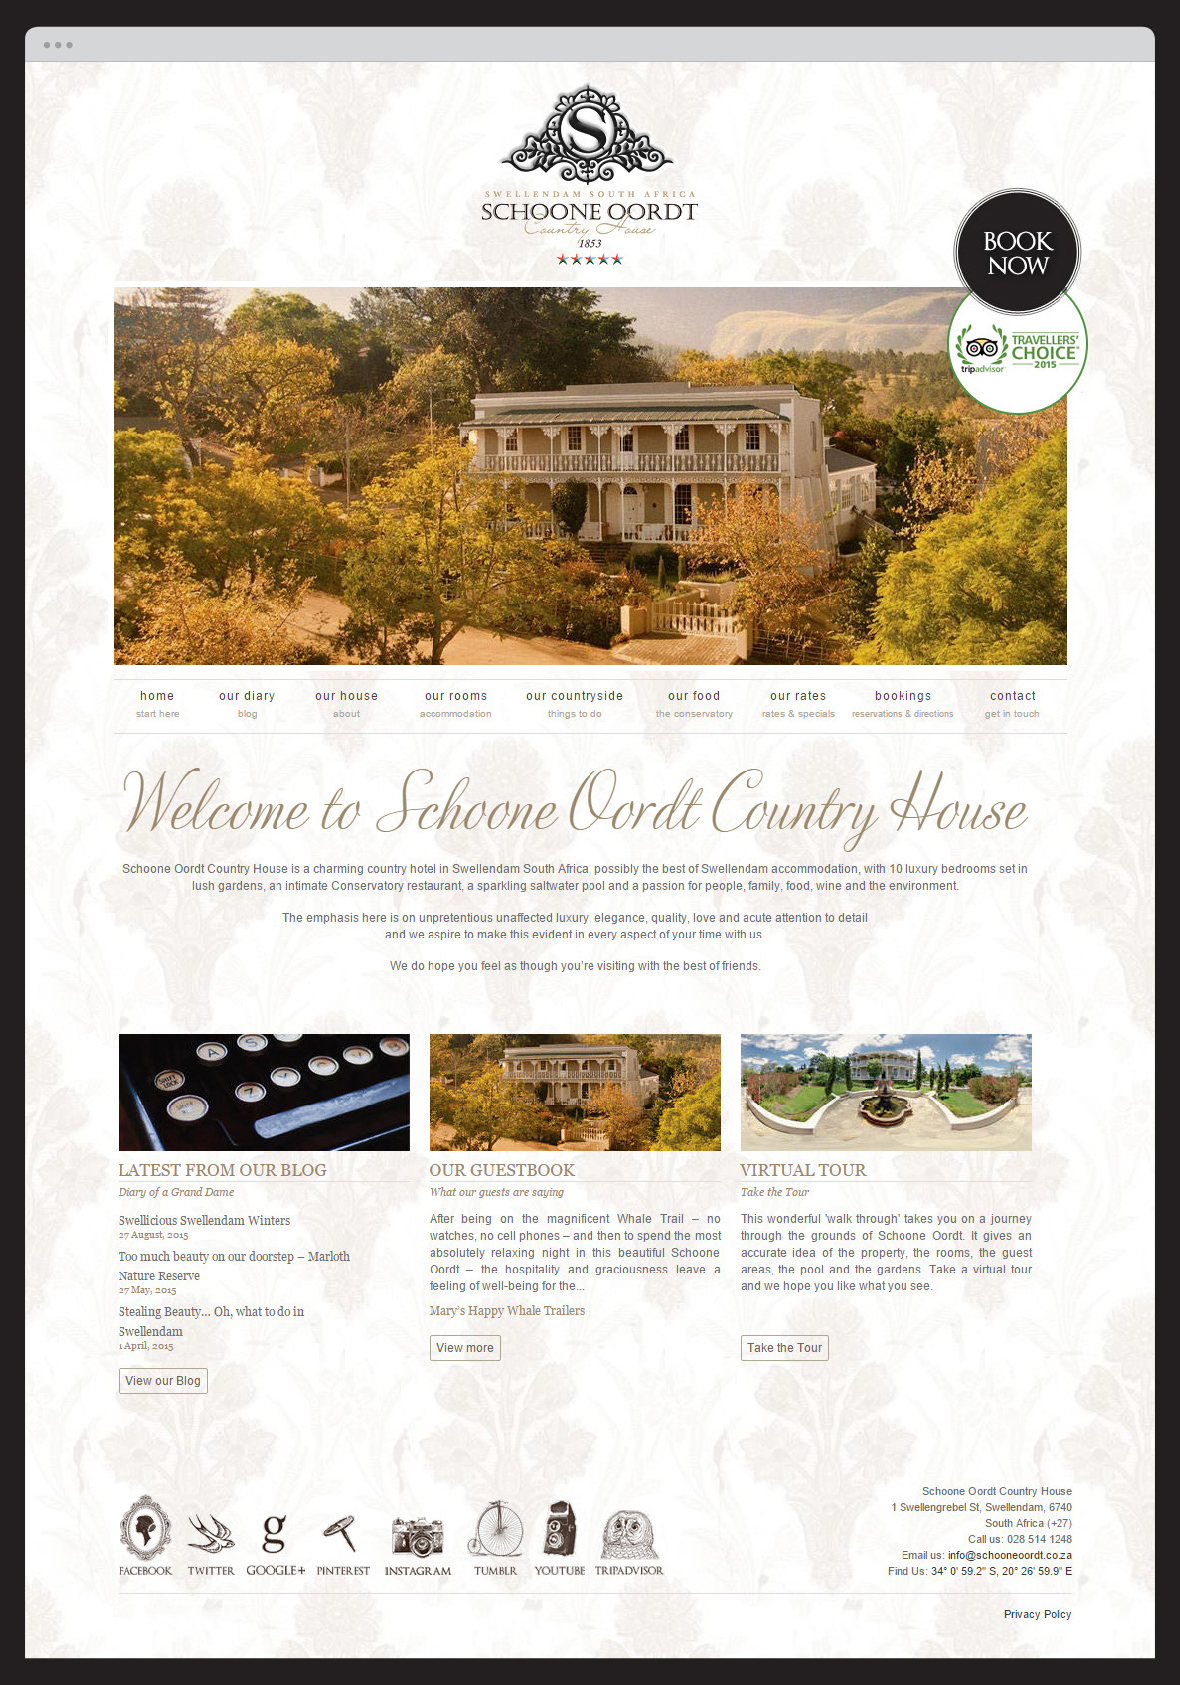 Schoone Oordt Country House Website